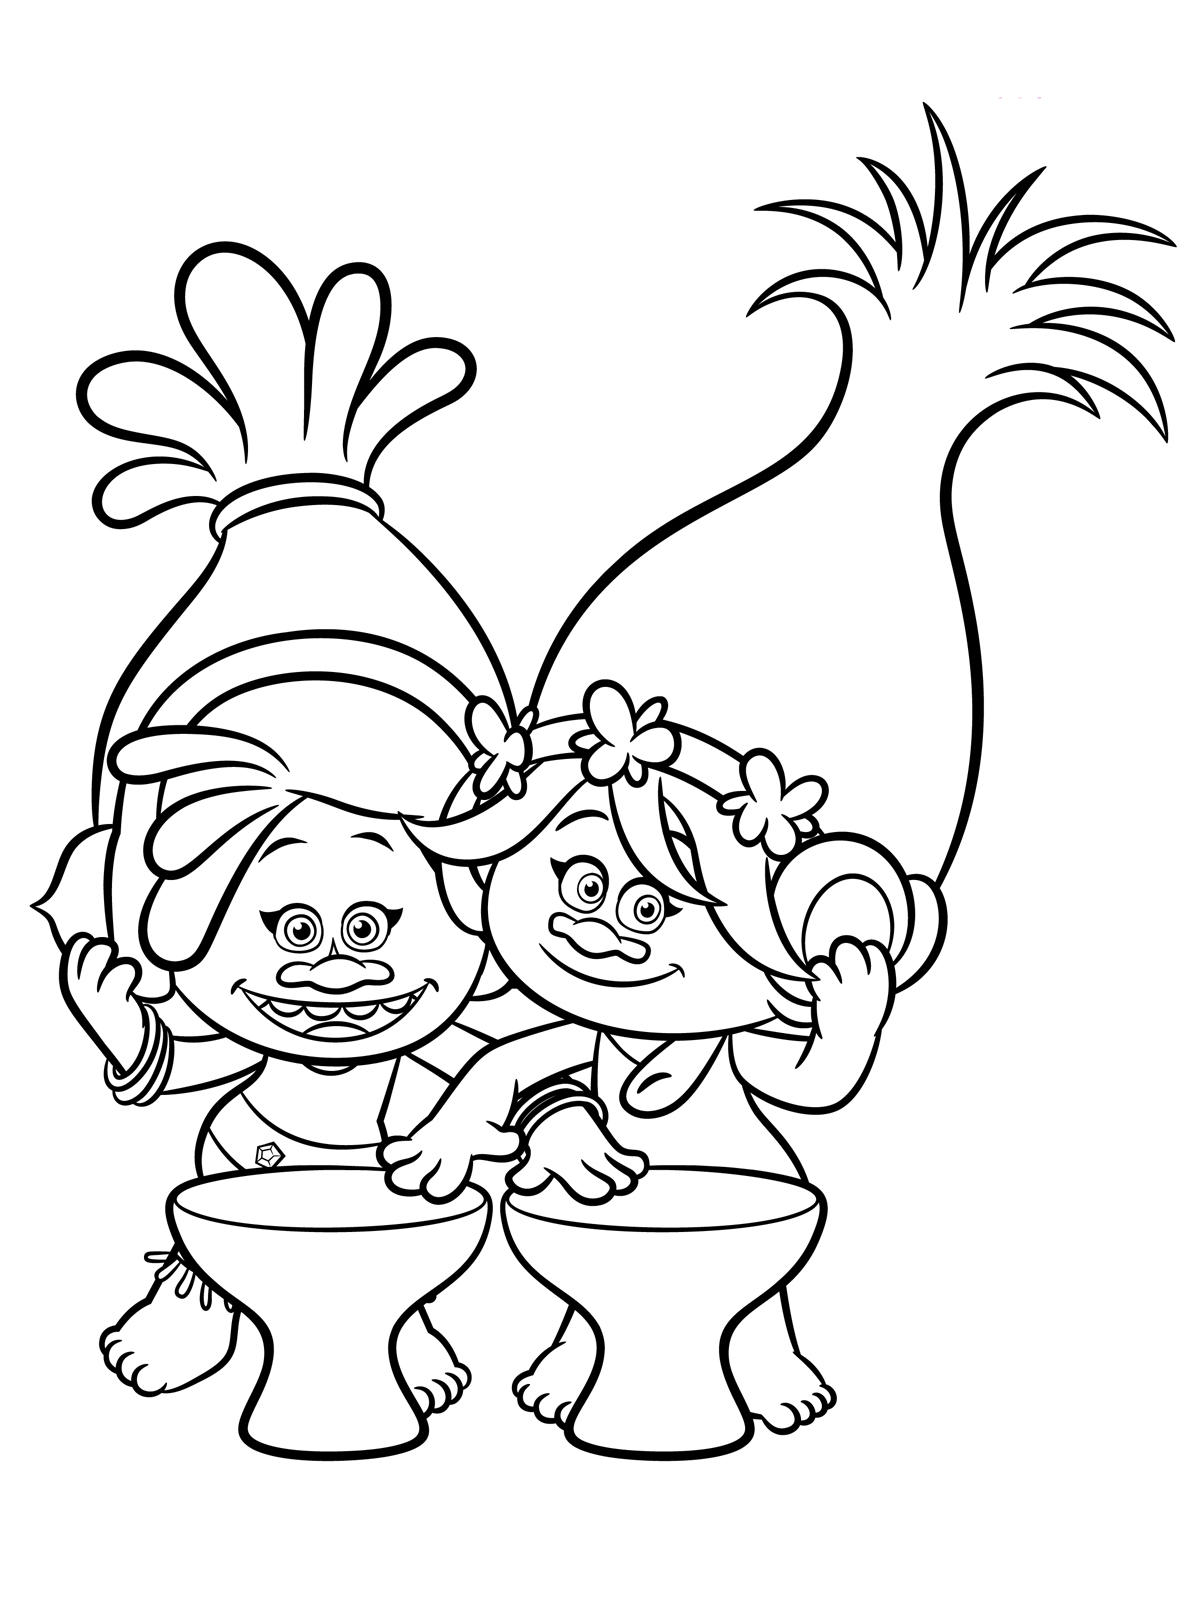 It's just an image of Satisfactory Free Trolls Printables